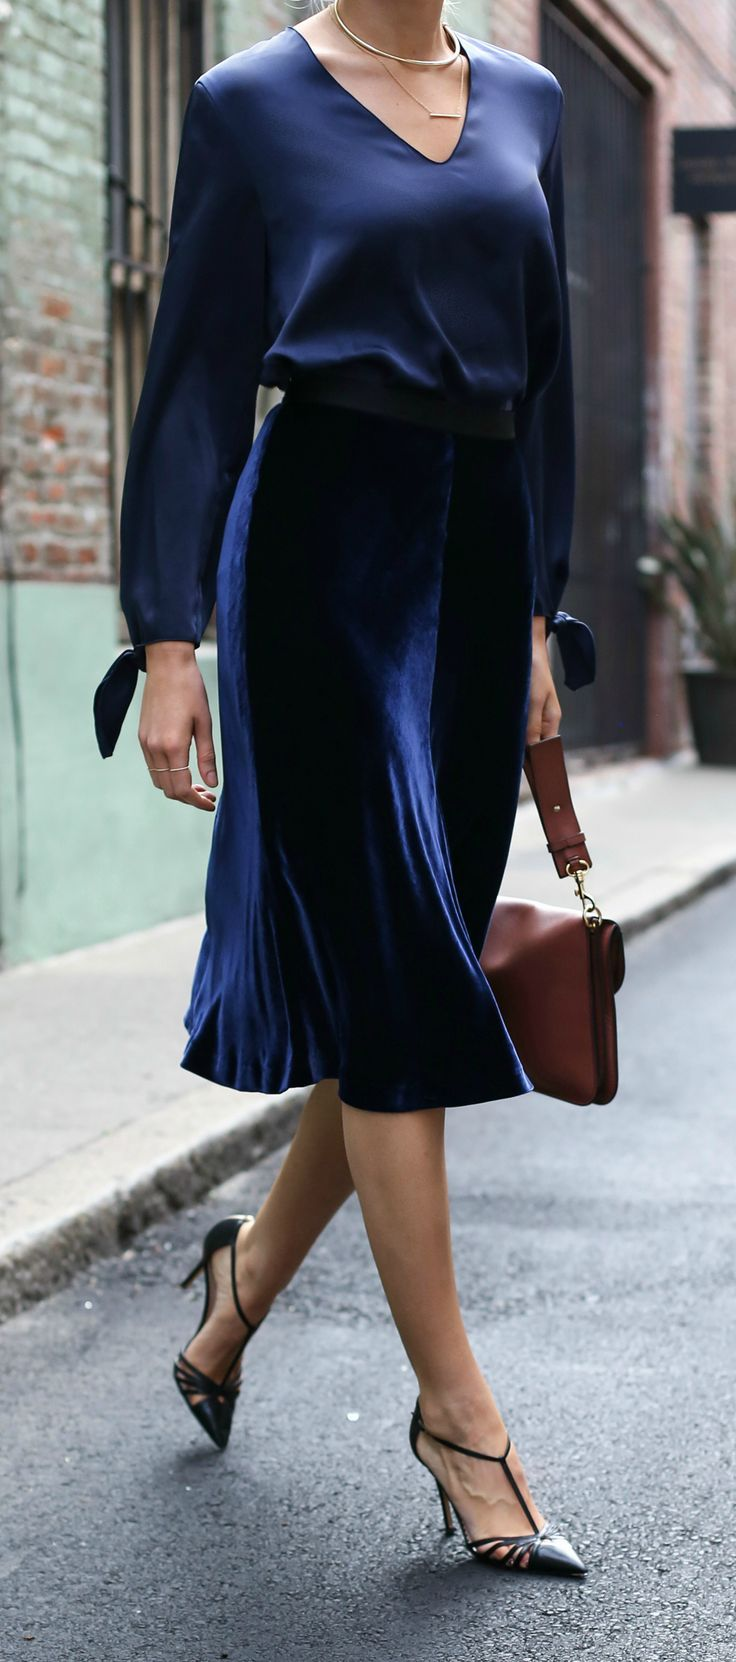 56833d4ad56 incorporating fall trends into your work wardrobe with this navy satin  blouse, navy velvet fit and flare midi skirt, and classic ankle strap pumps  (Click ...